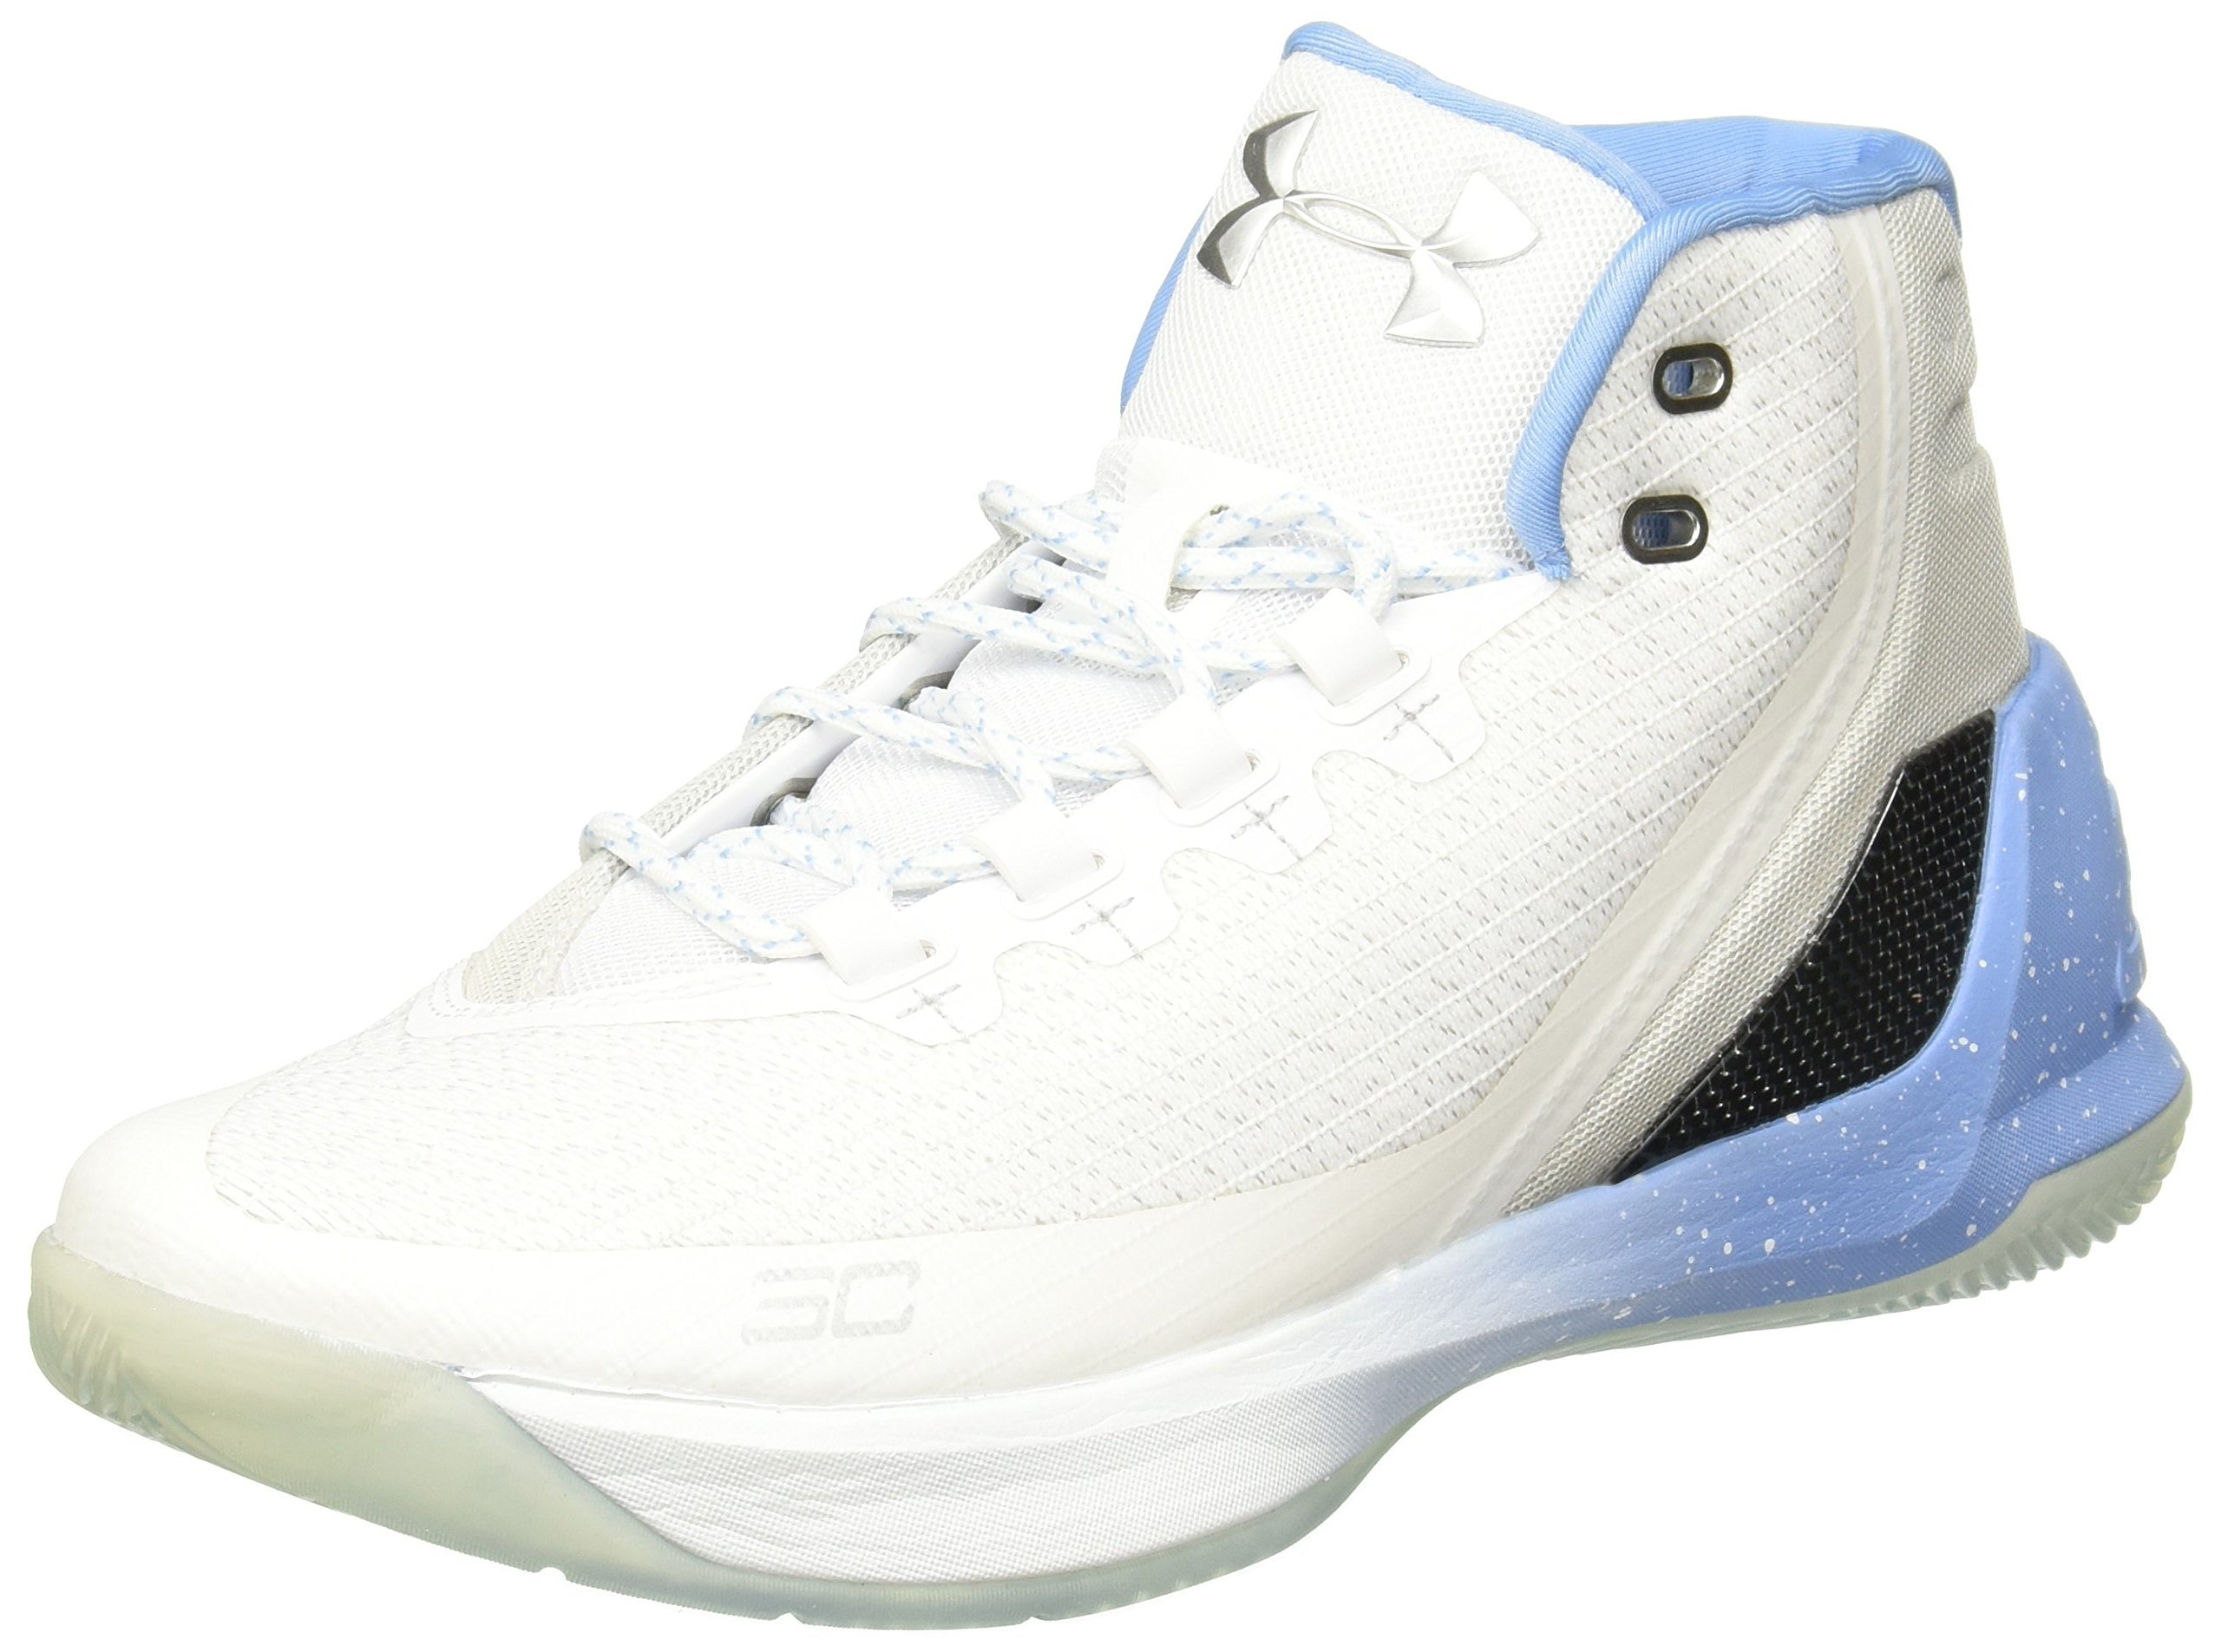 Under Armour Curry 3 Basketball Shoes - 12 - White